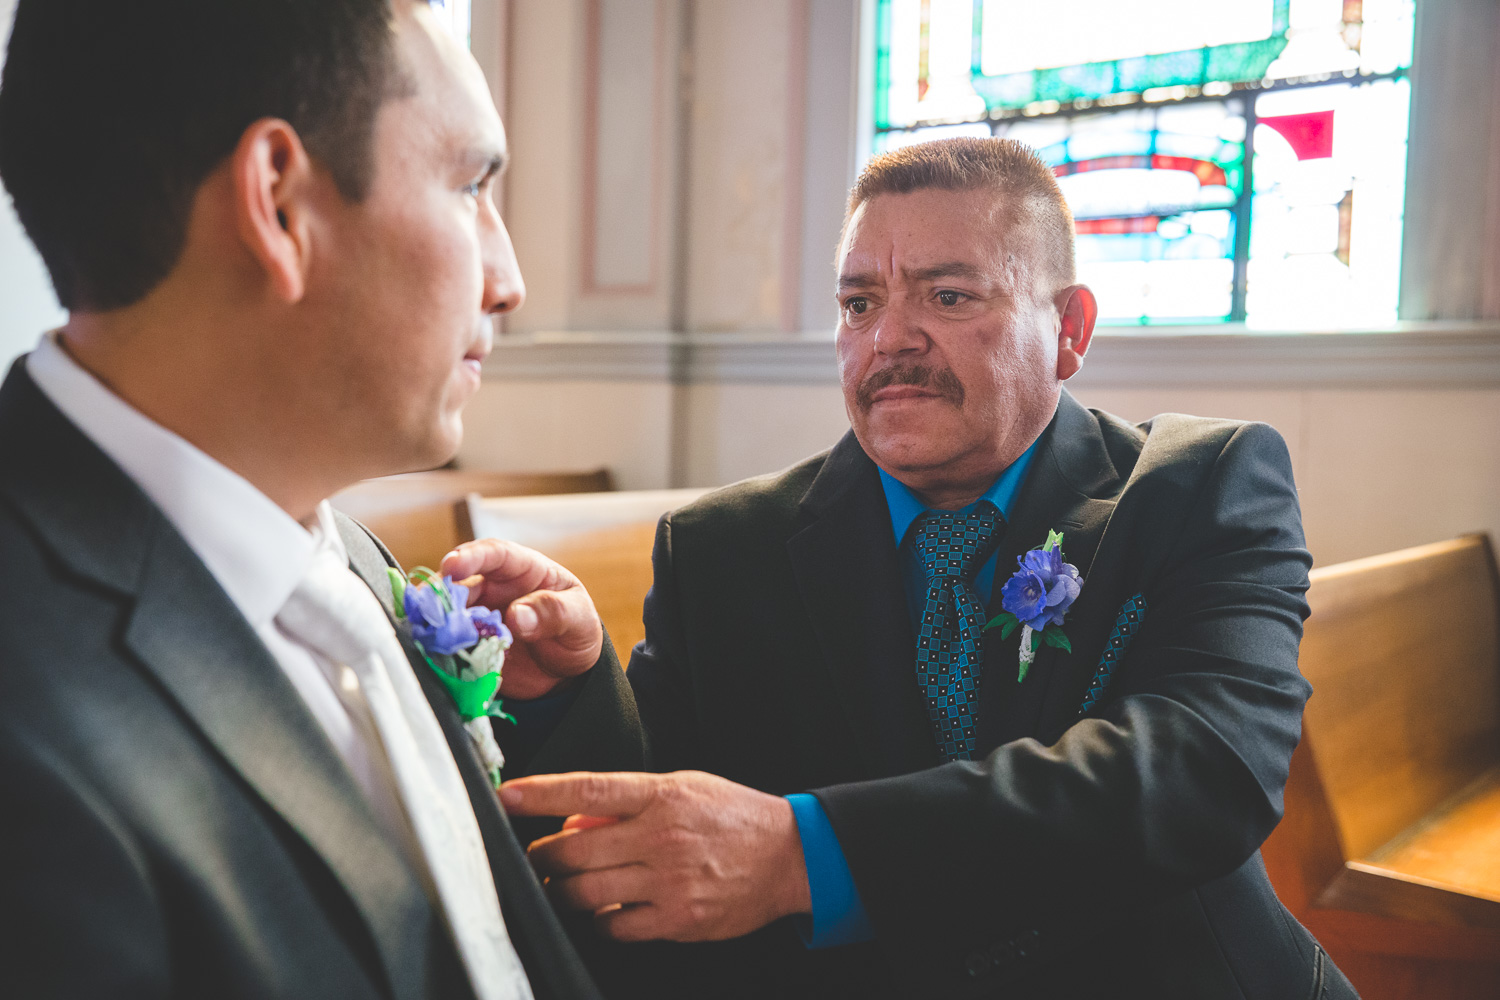 emotional father of the groom